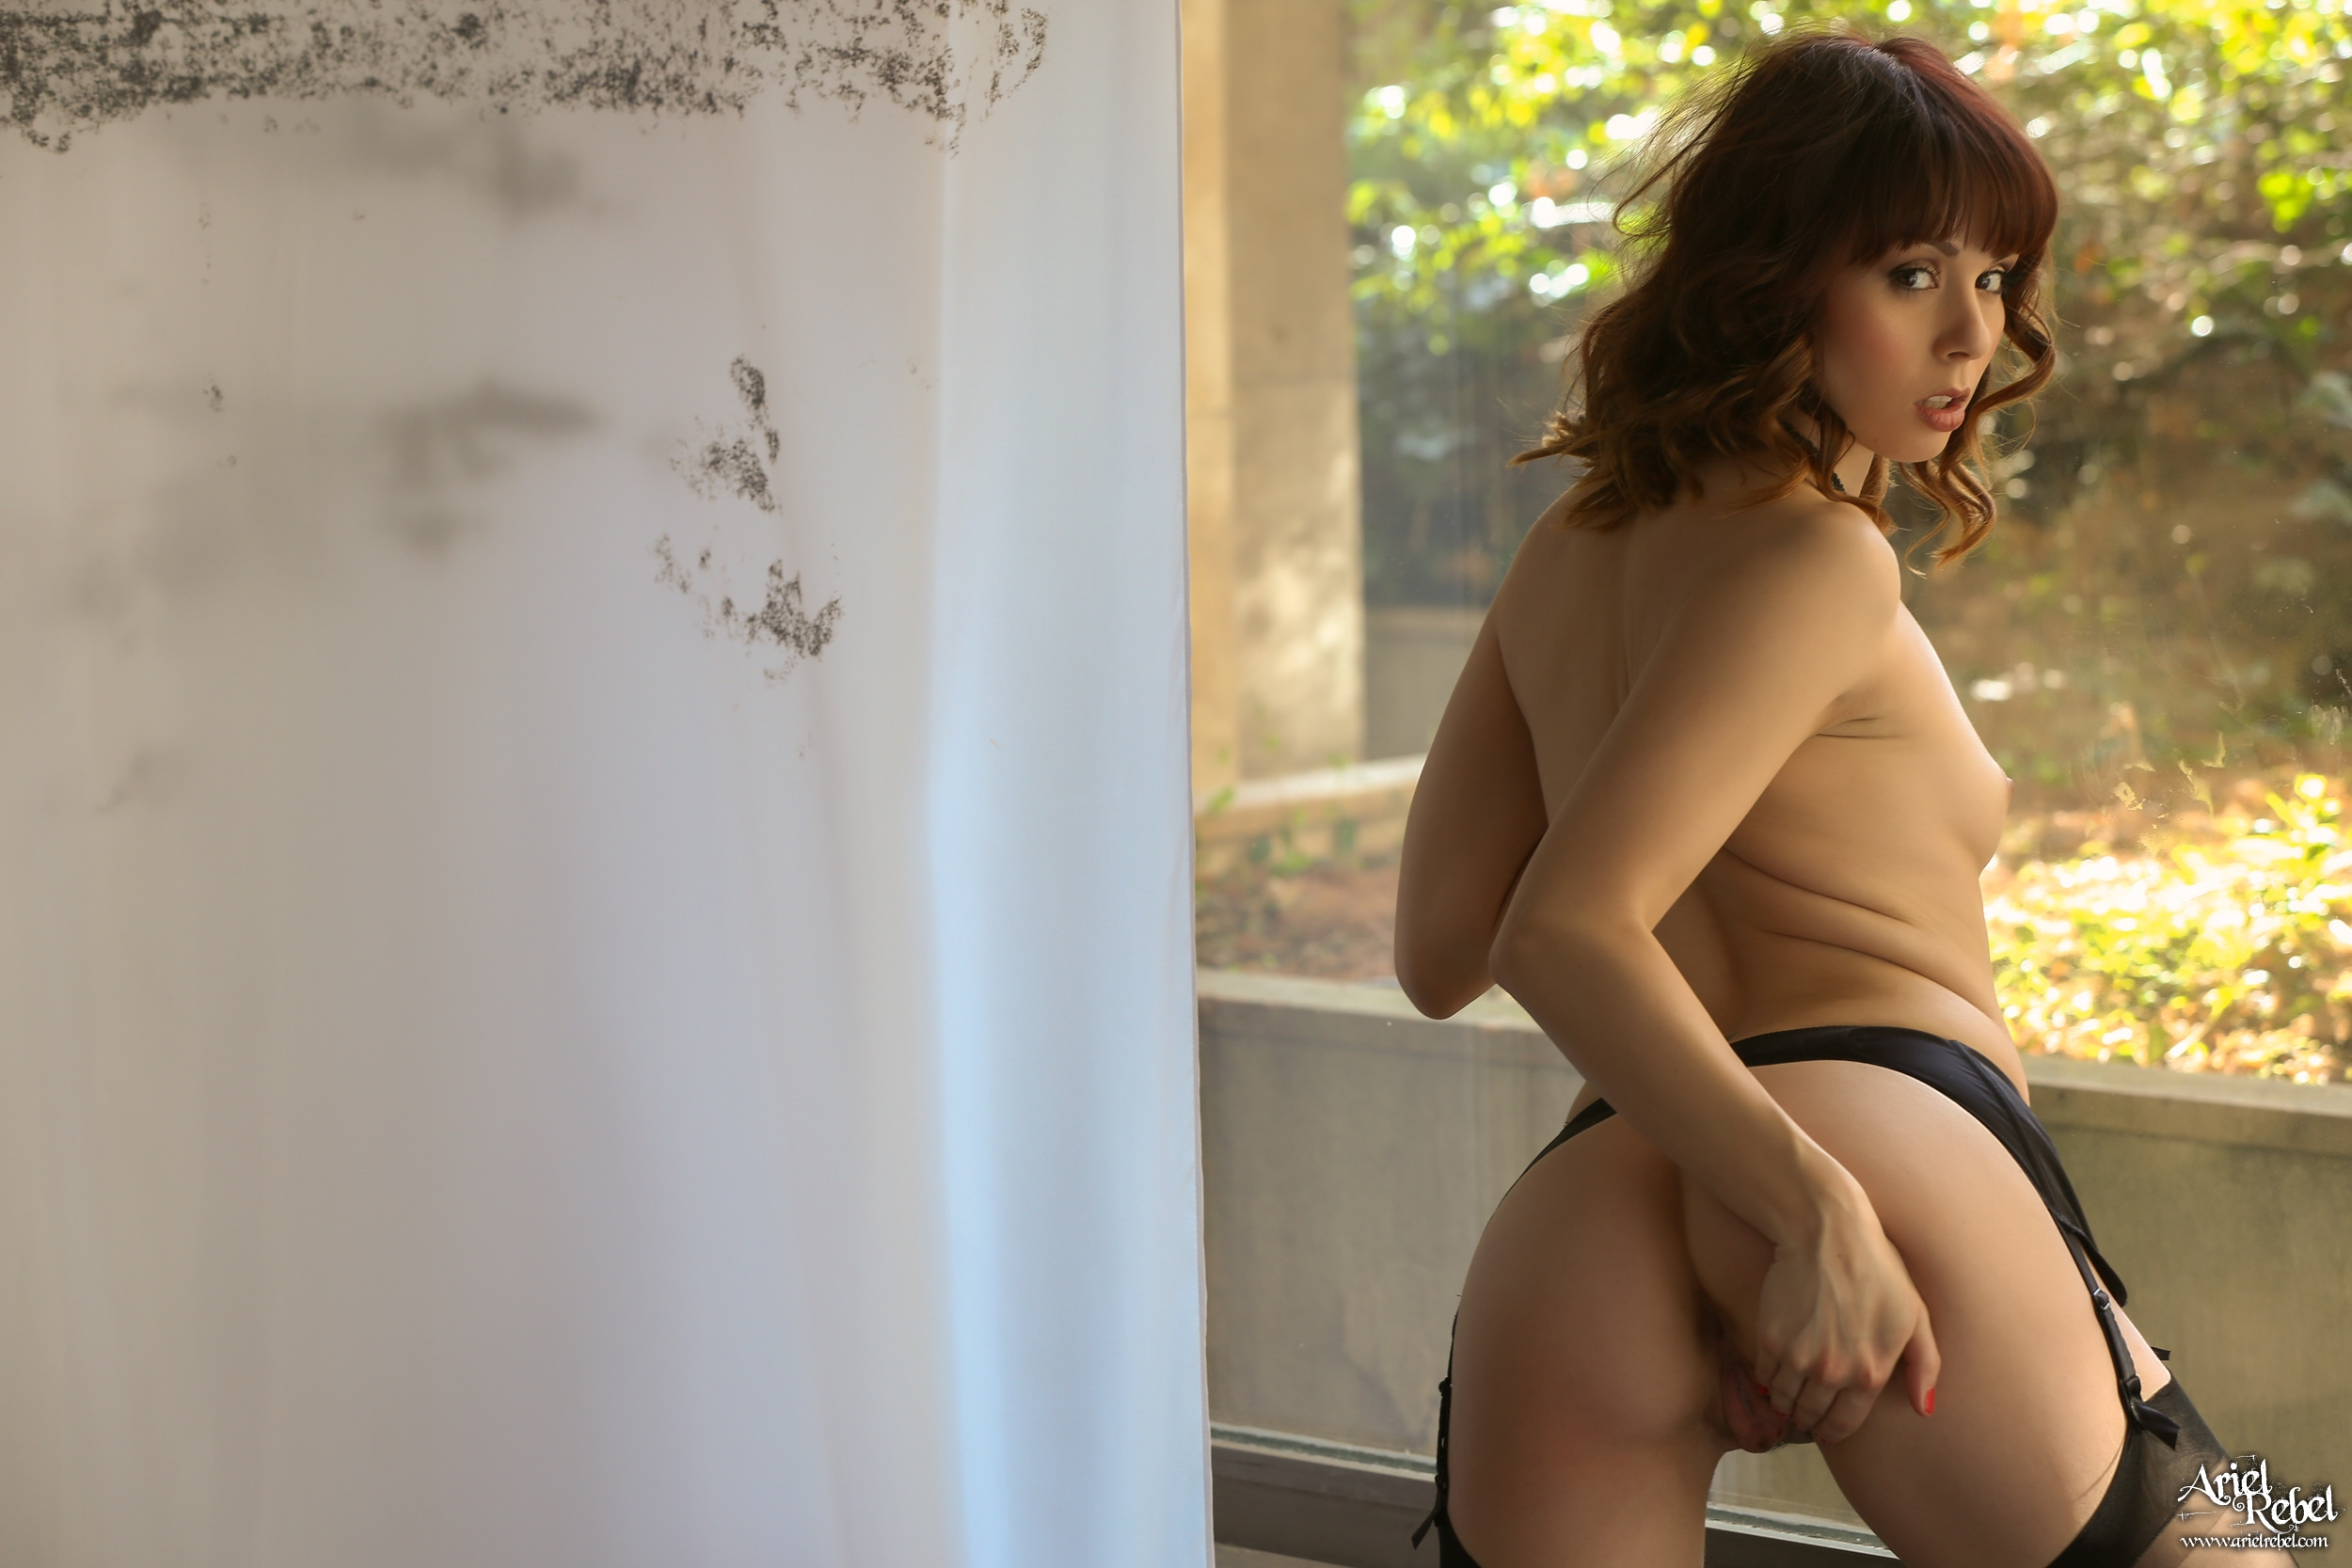 sexy-ariel-rebel-pictures-gujrati-girl-in-ghana-naked